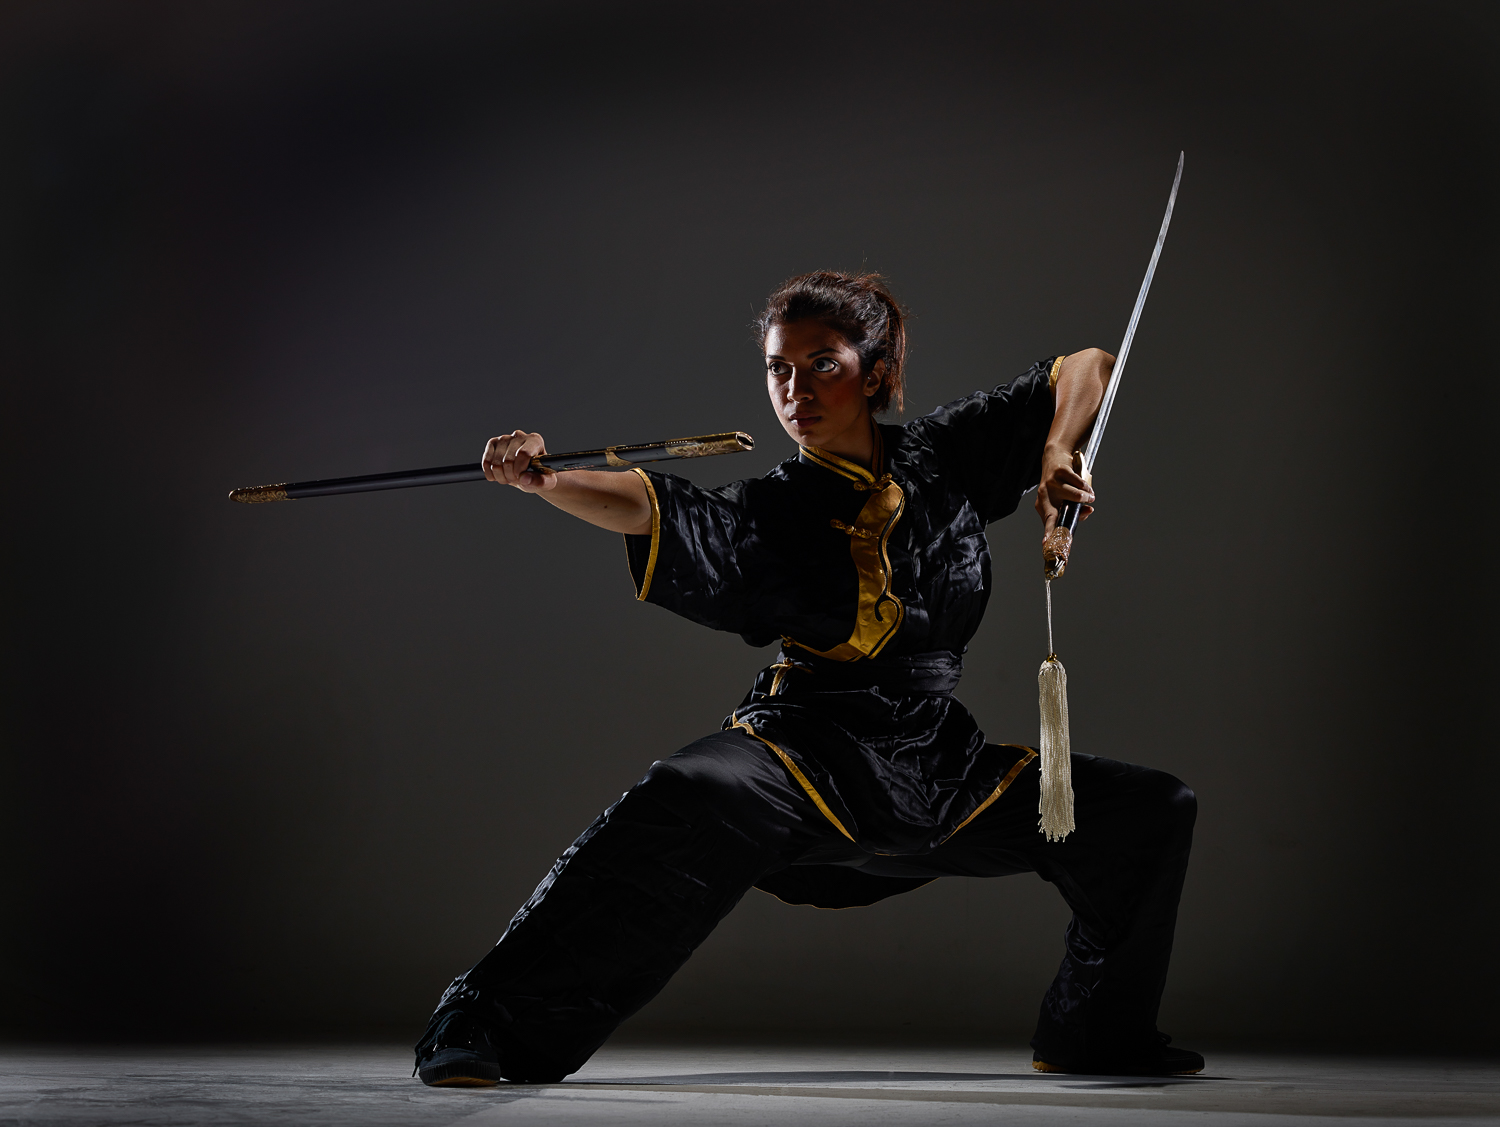 Will Martial Arts9621 as Smart Object-1web_1500.jpg